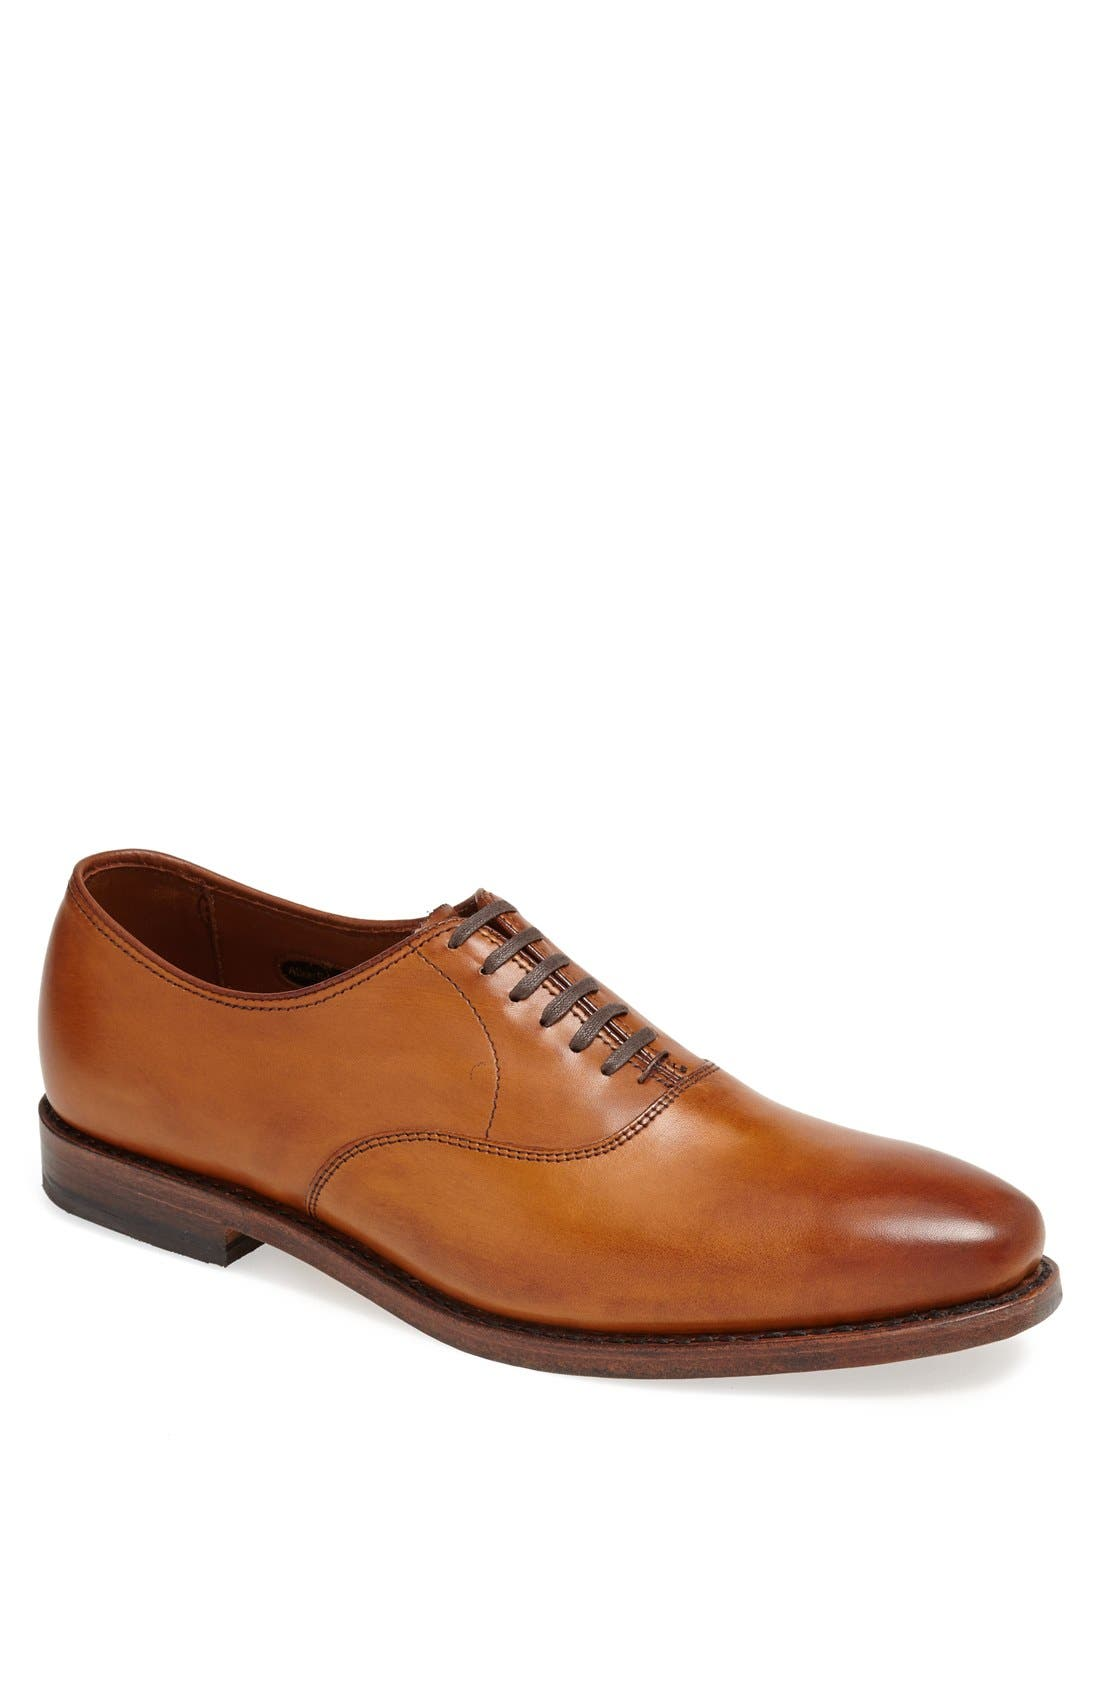 ALLEN EDMONDS Carlyle Plain Toe Oxford, Main, color, WALNUT LEATHER